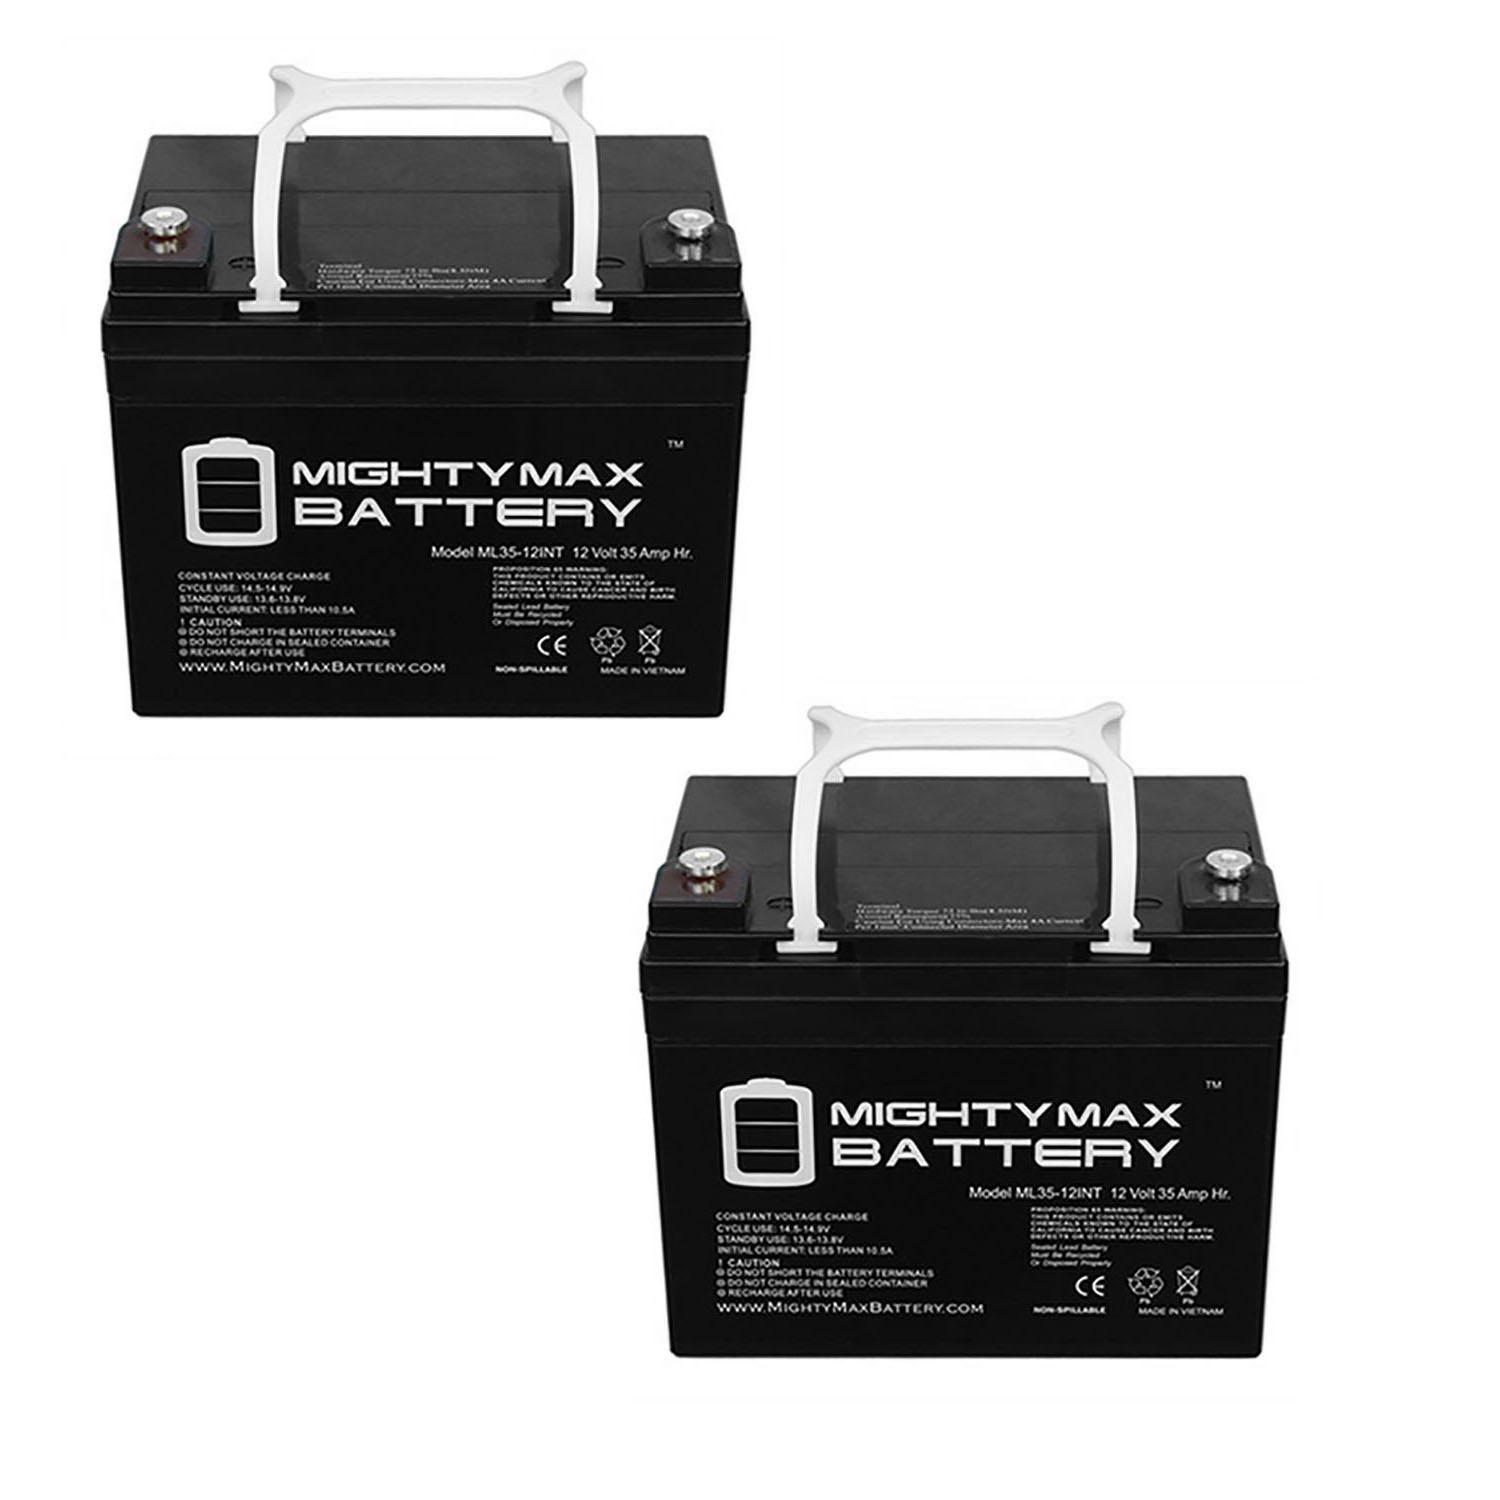 12V 35AH INT Replacement Battery compatible with Interstate DCM0035 Wheelchair - 2 Pack